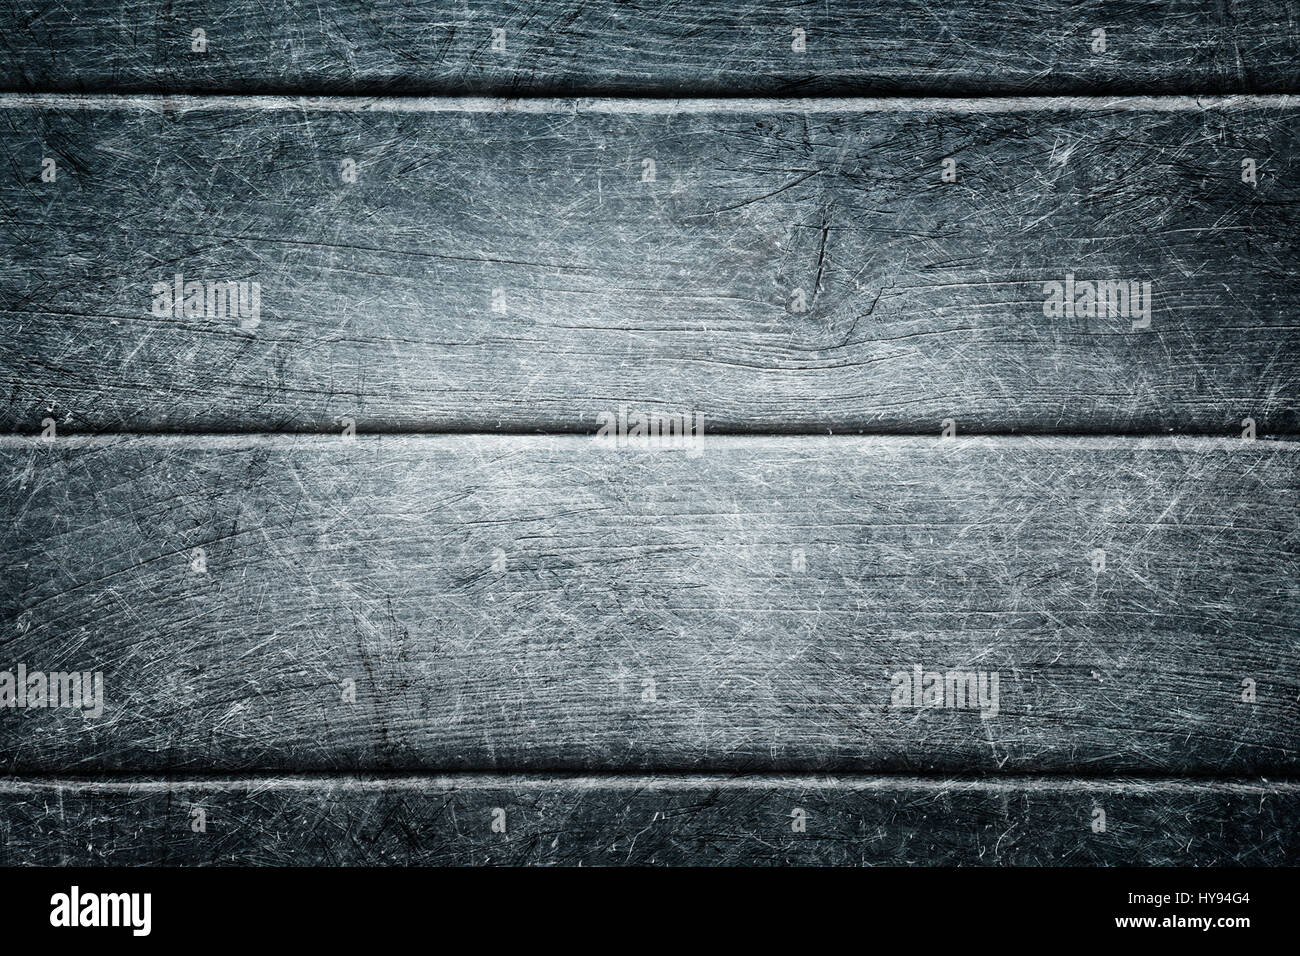 holz wand photos & holz wand images - alamy